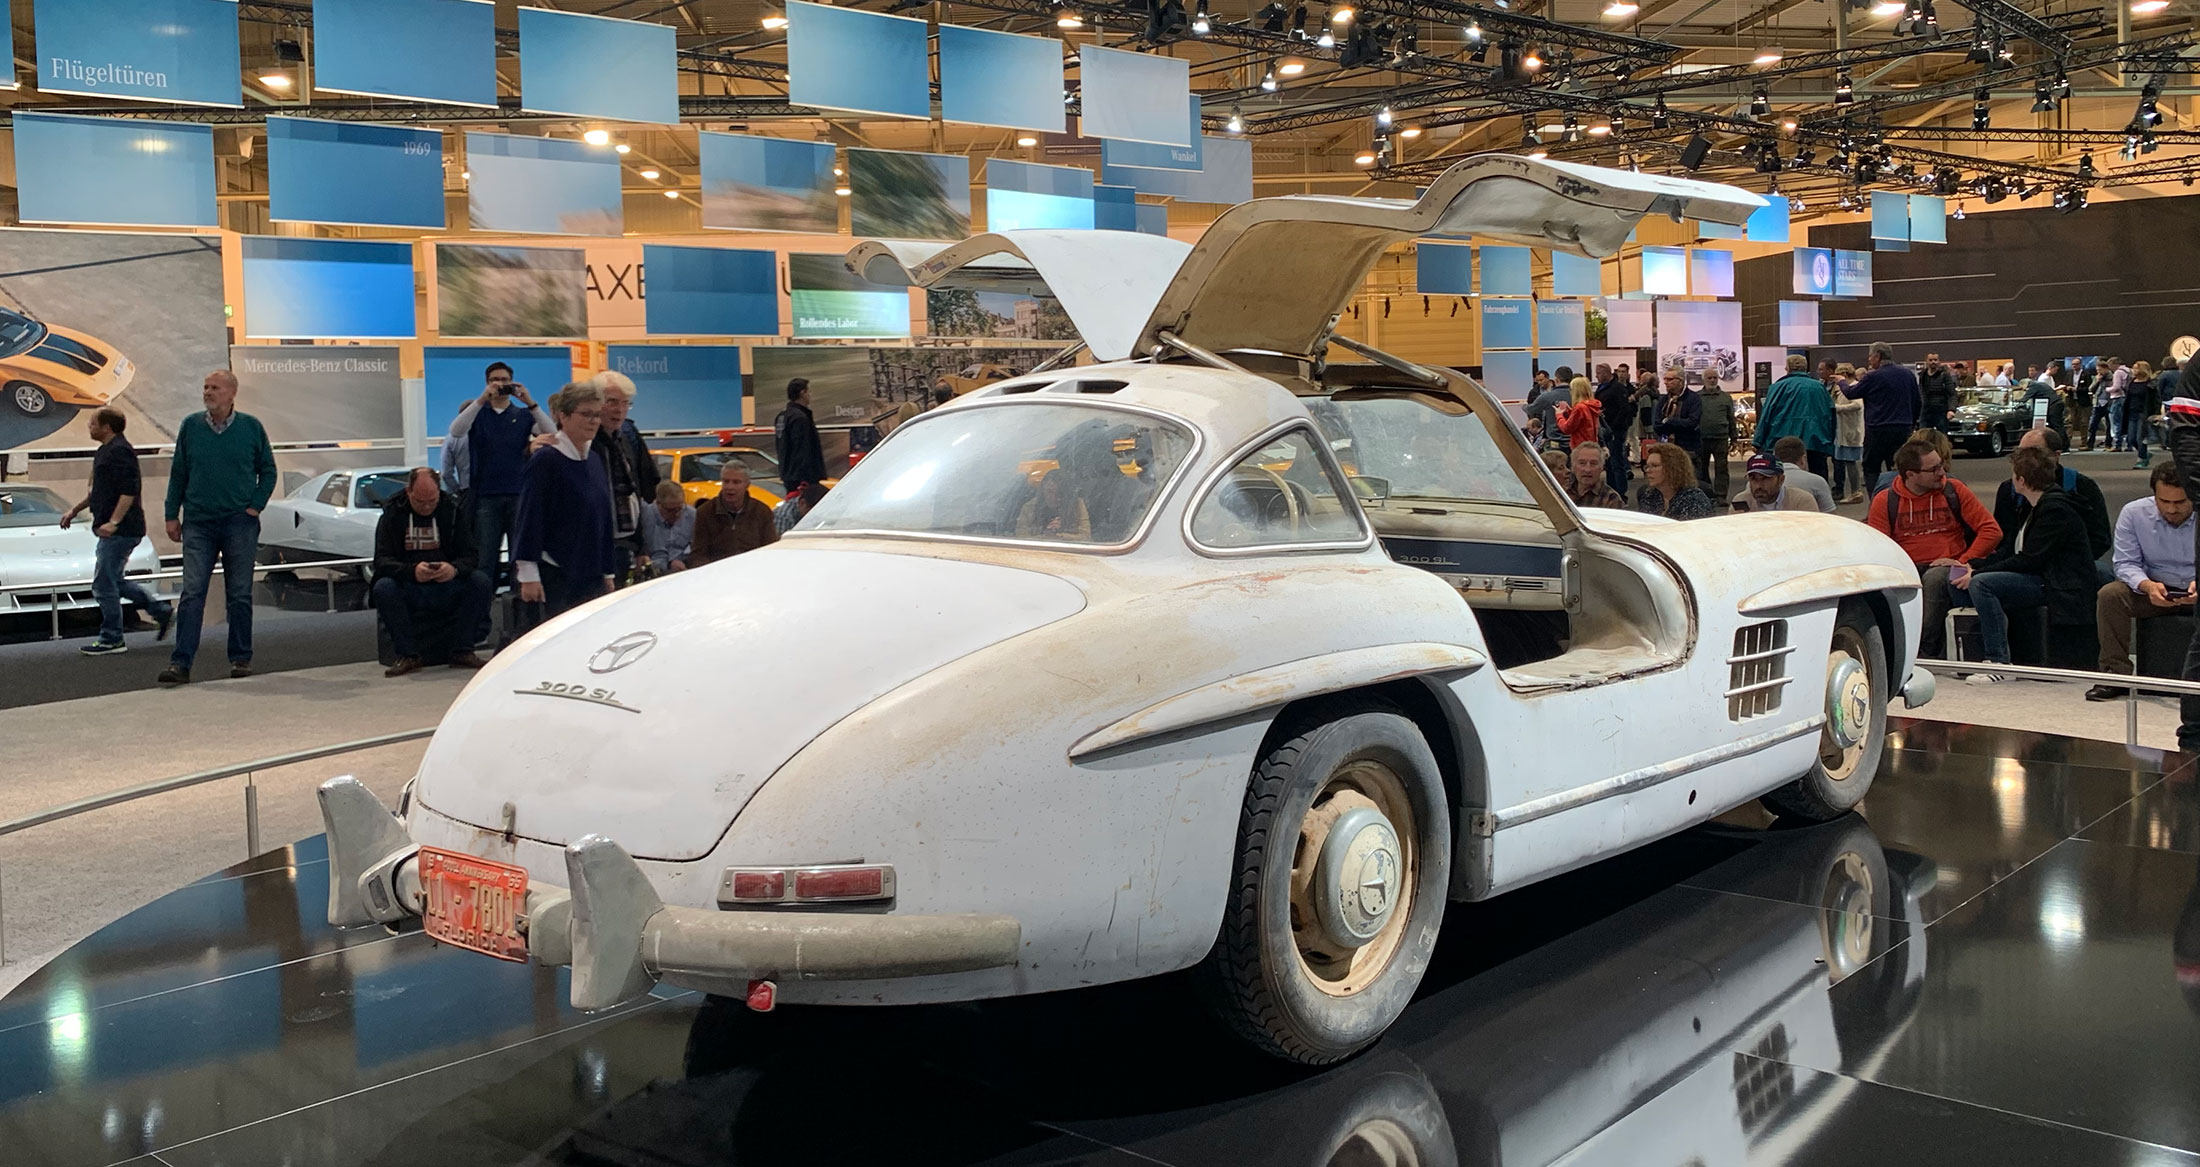 Legit barn-find from Florida. Lots of SL Gullwings at Techno Classica…LOTS.